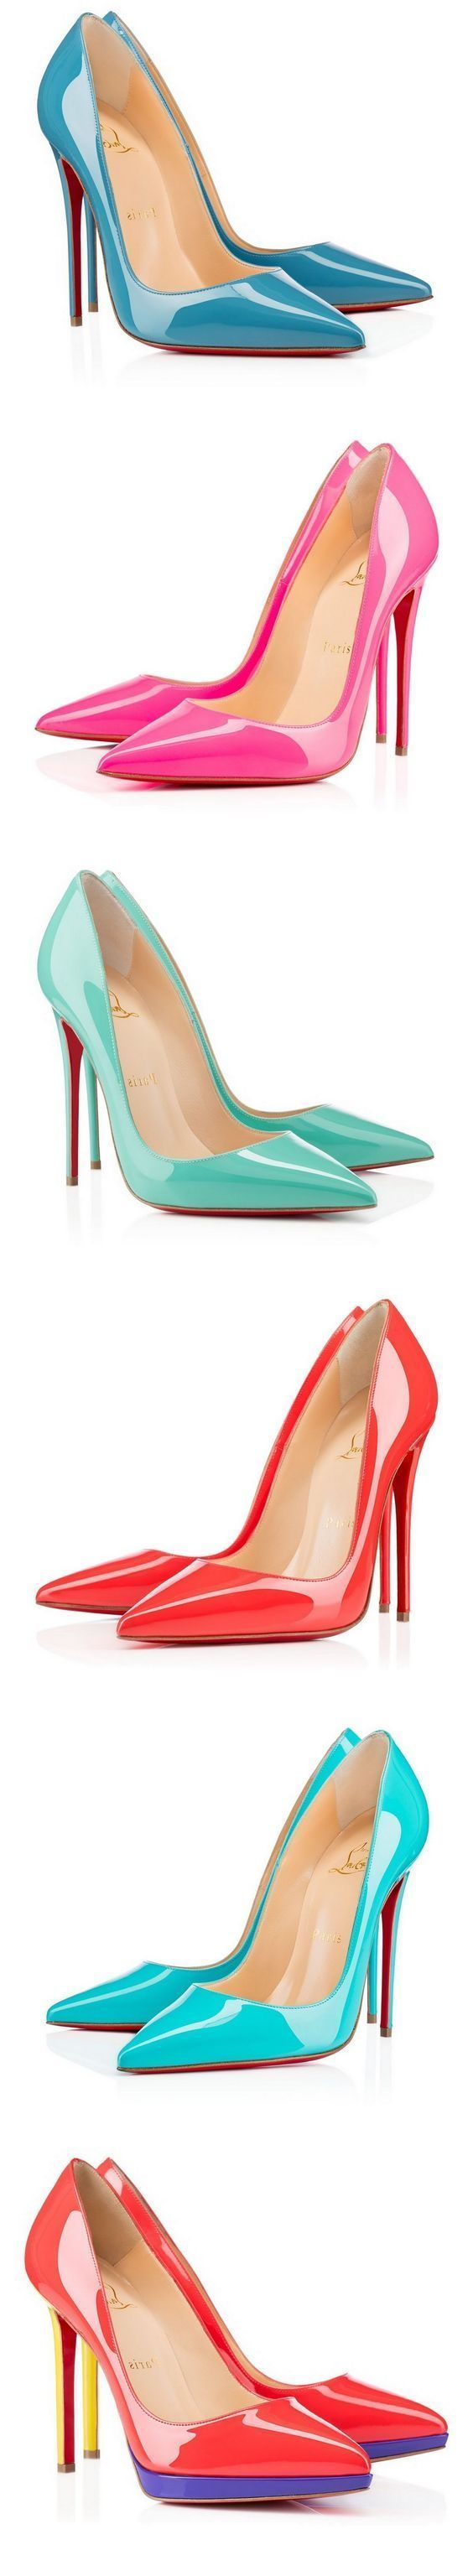 Christian Louboutin High Heels Collection & More Luxury Details #christianlouboutinnails